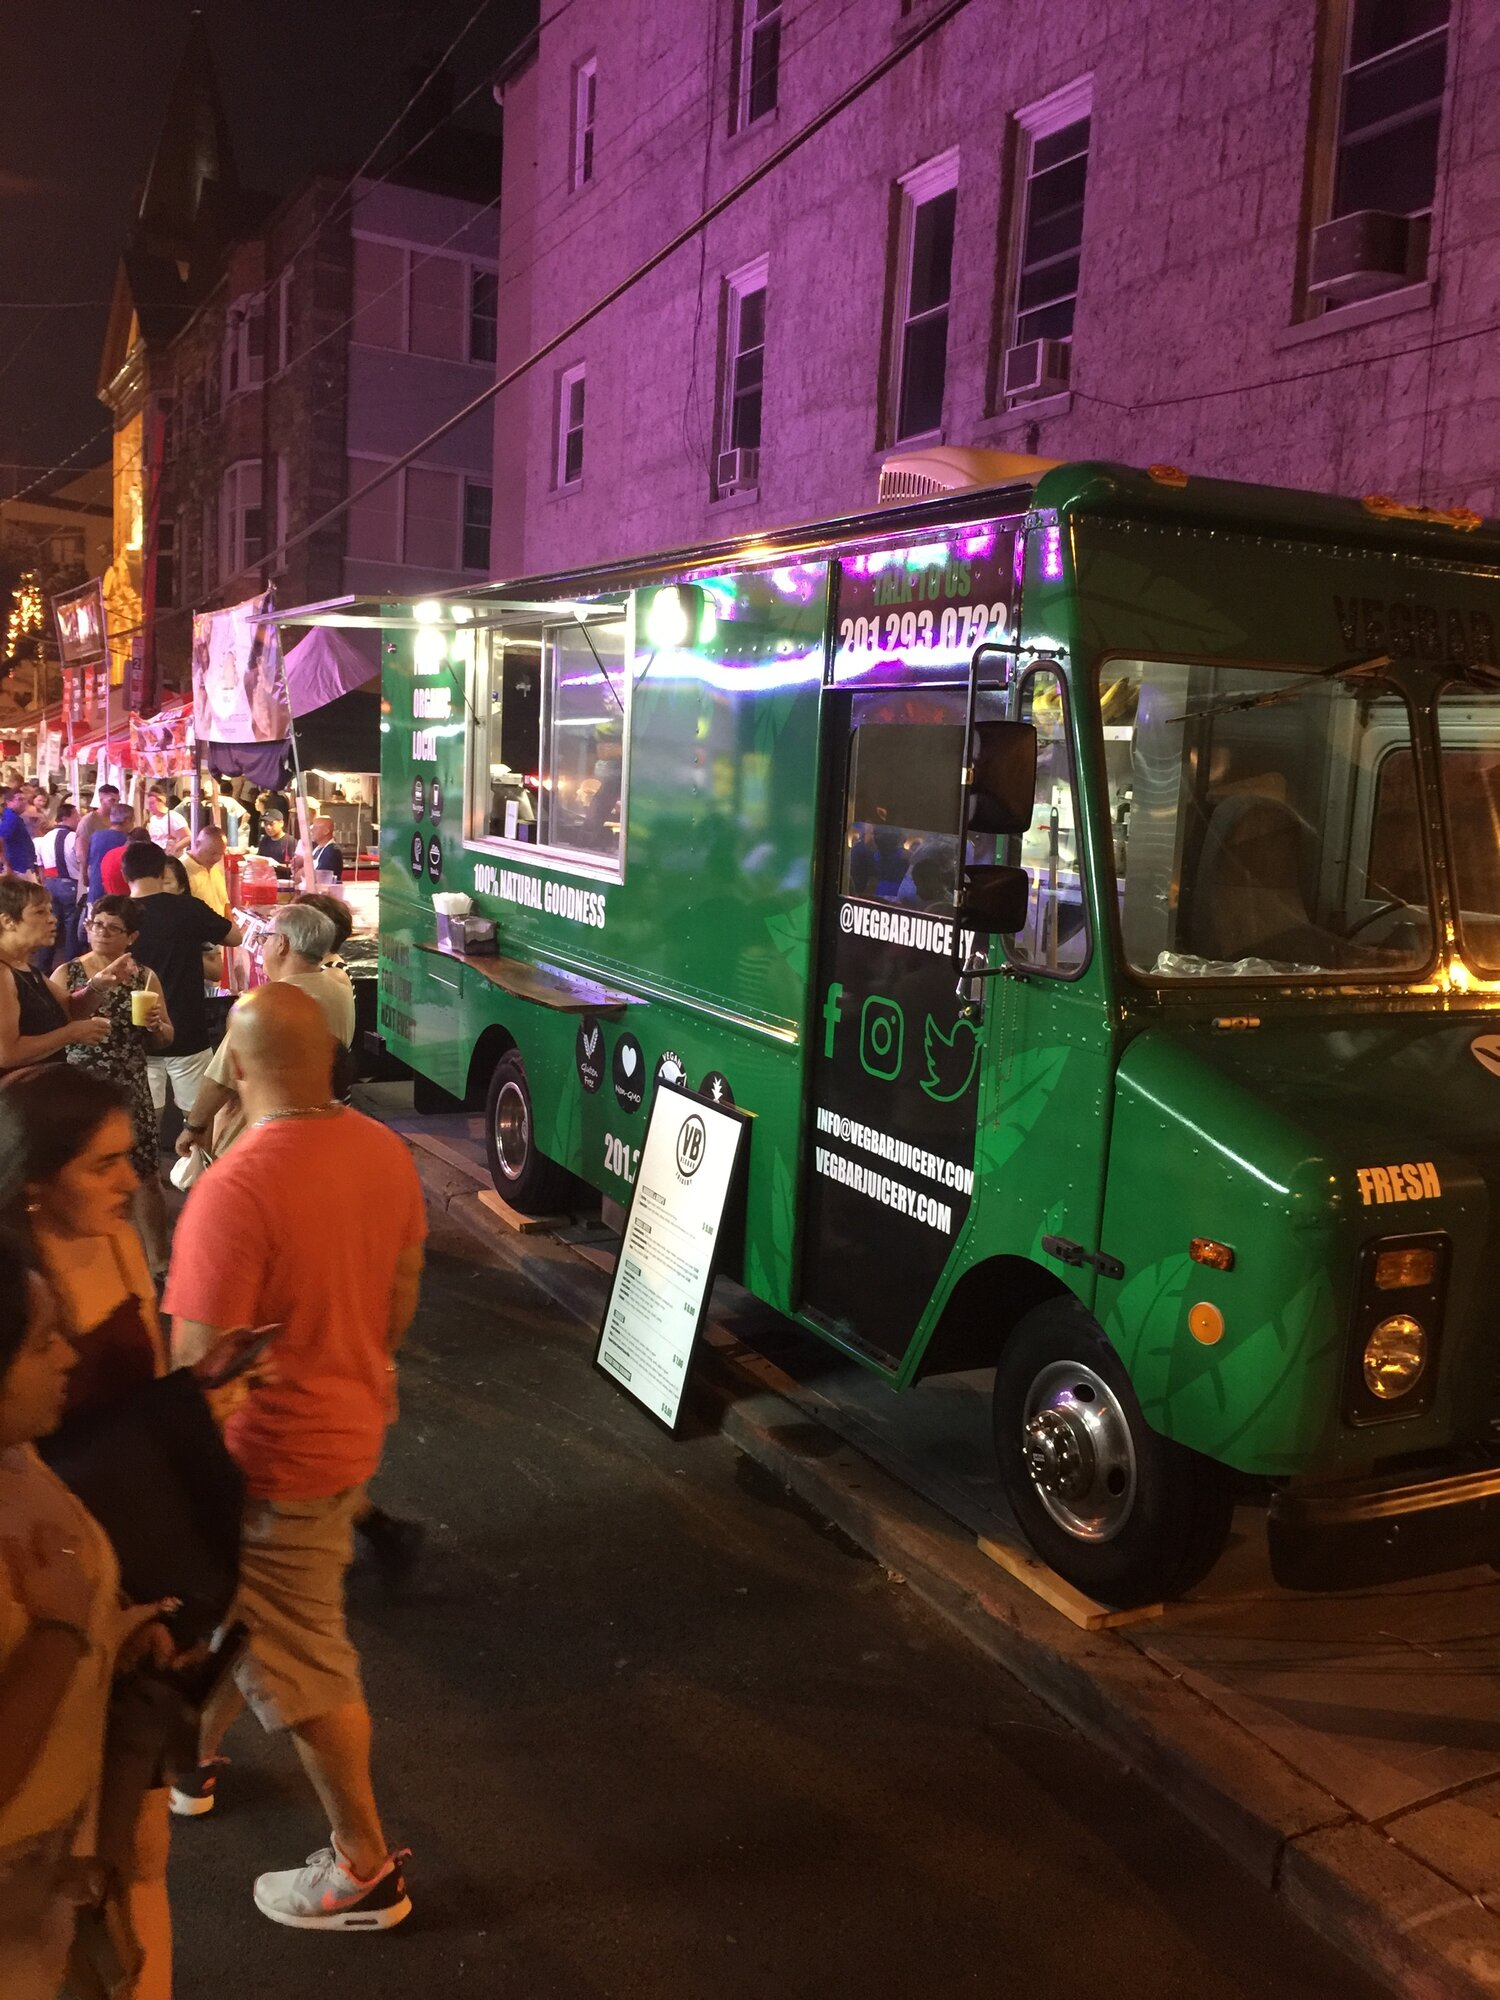 food truck outside at night for an event